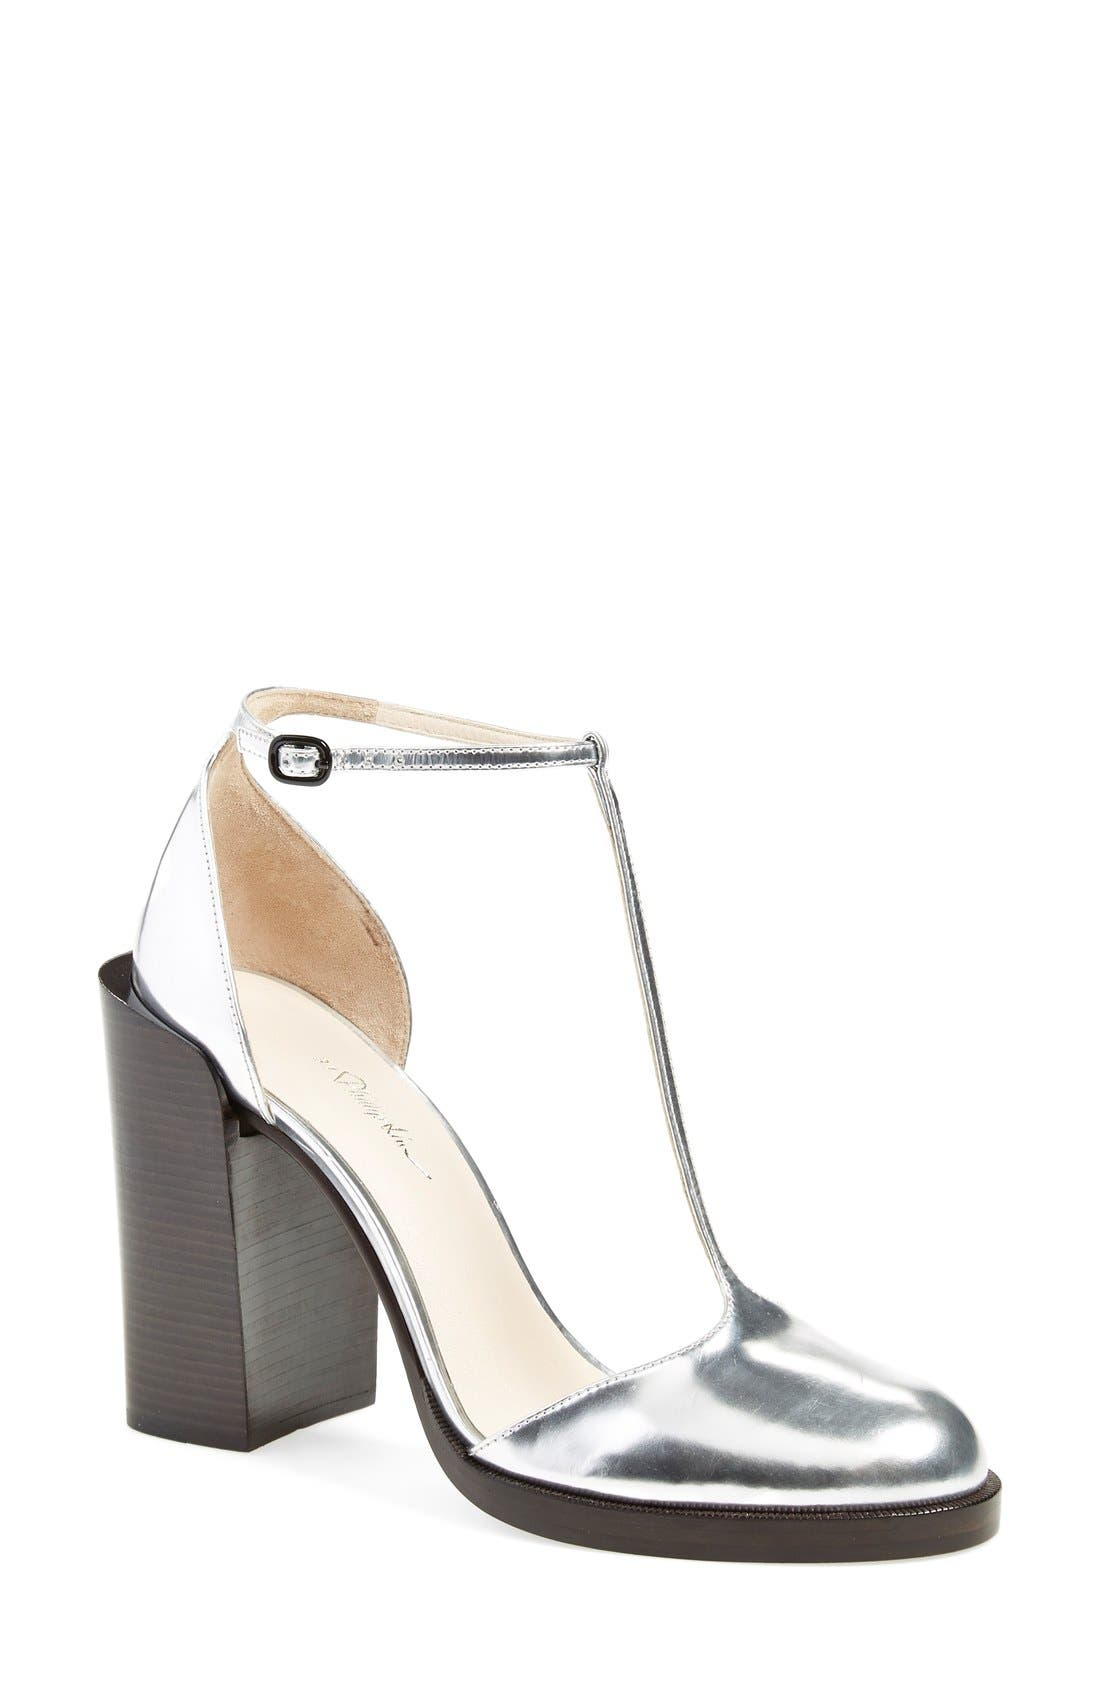 Alternate Image 1 Selected - 3.1 Phillip Lim 'Augustine' T-Strap Pump (Women)